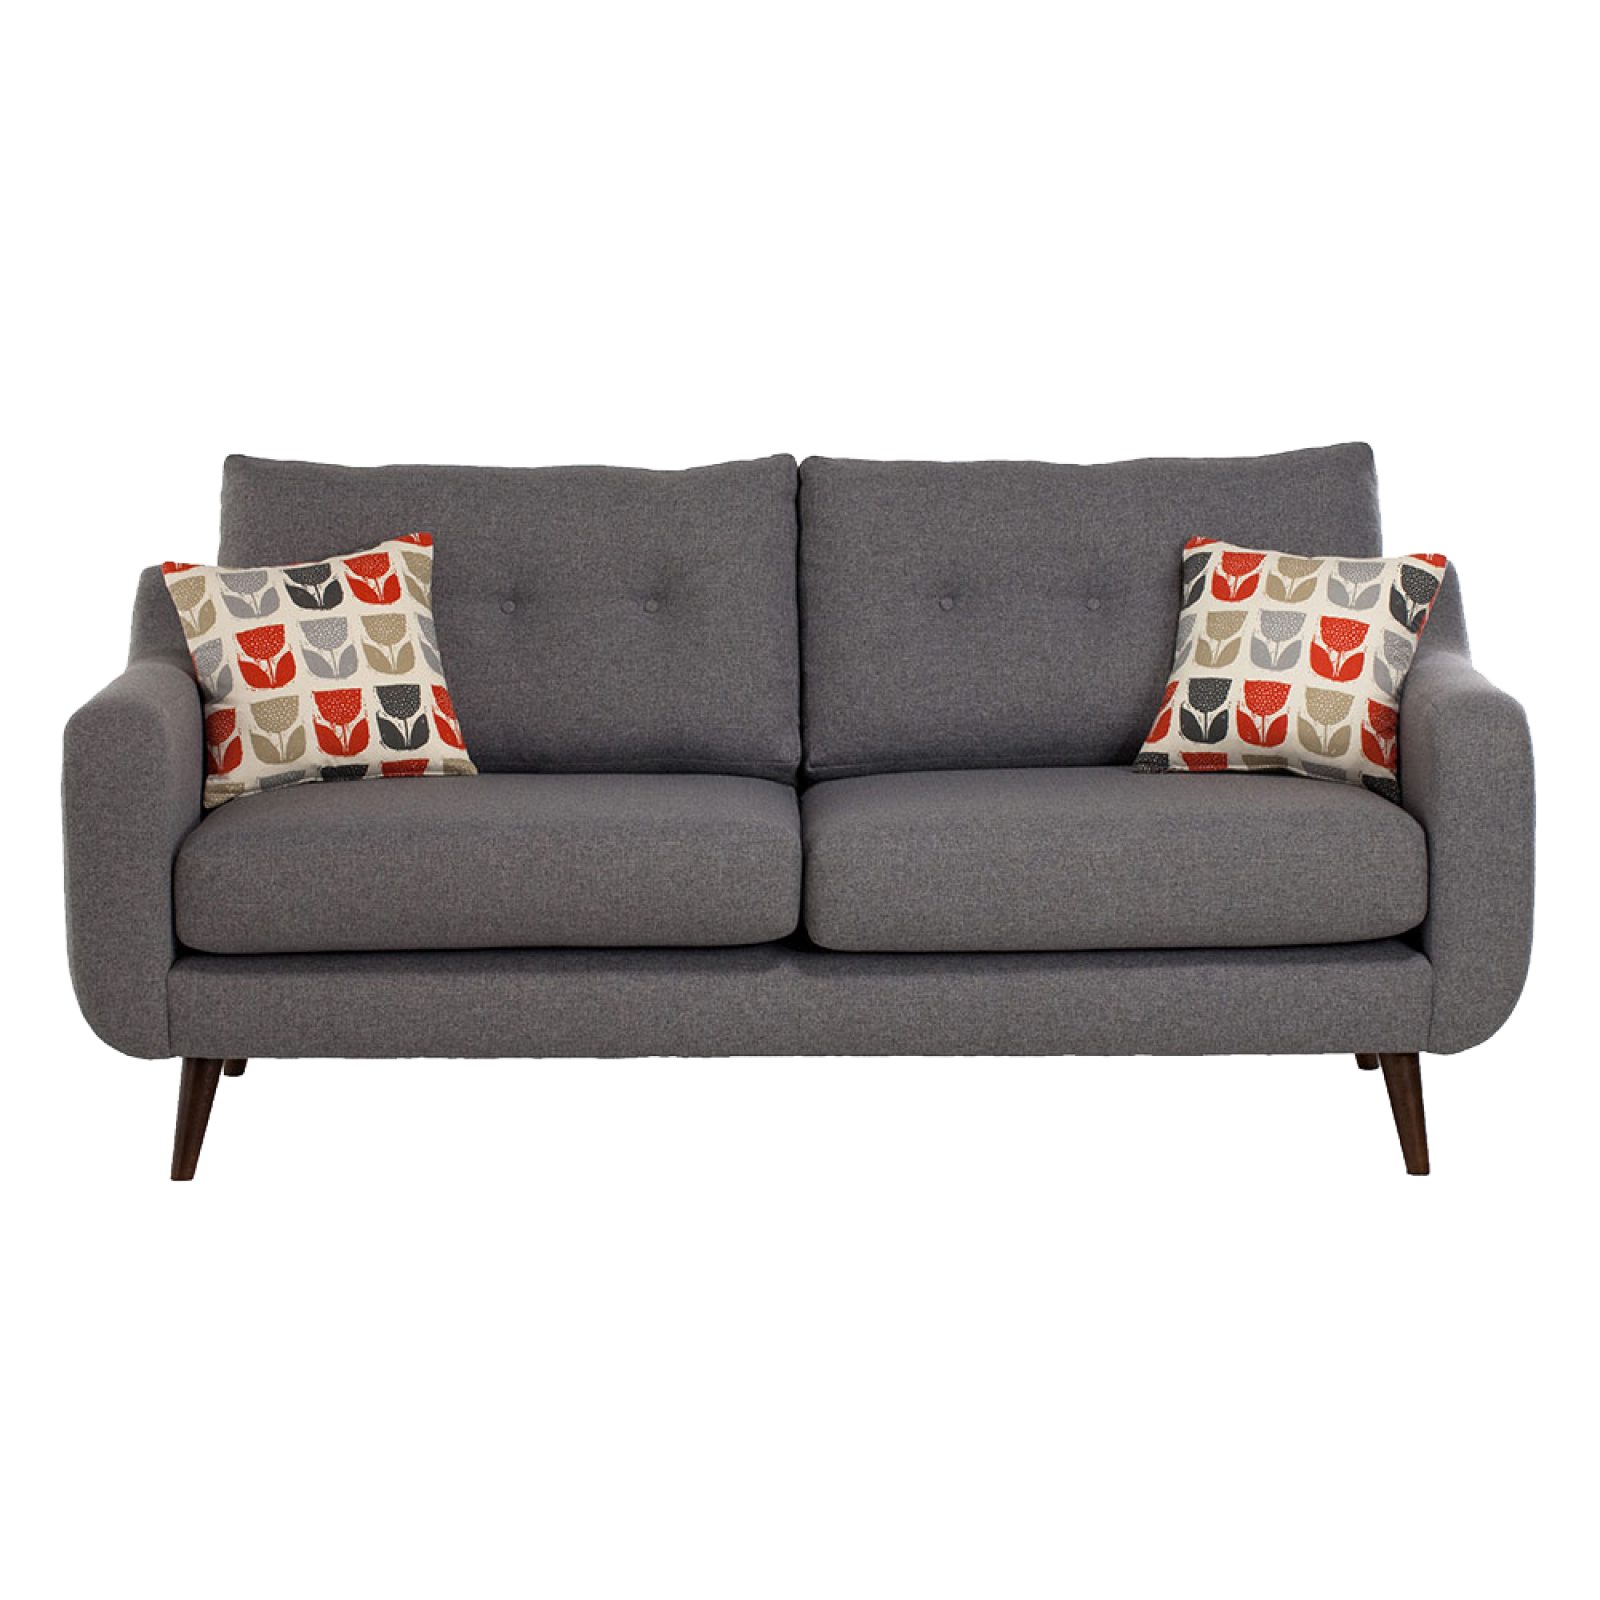 Lisbon Large Sofa By Whitemeadow - Fabric Grade B